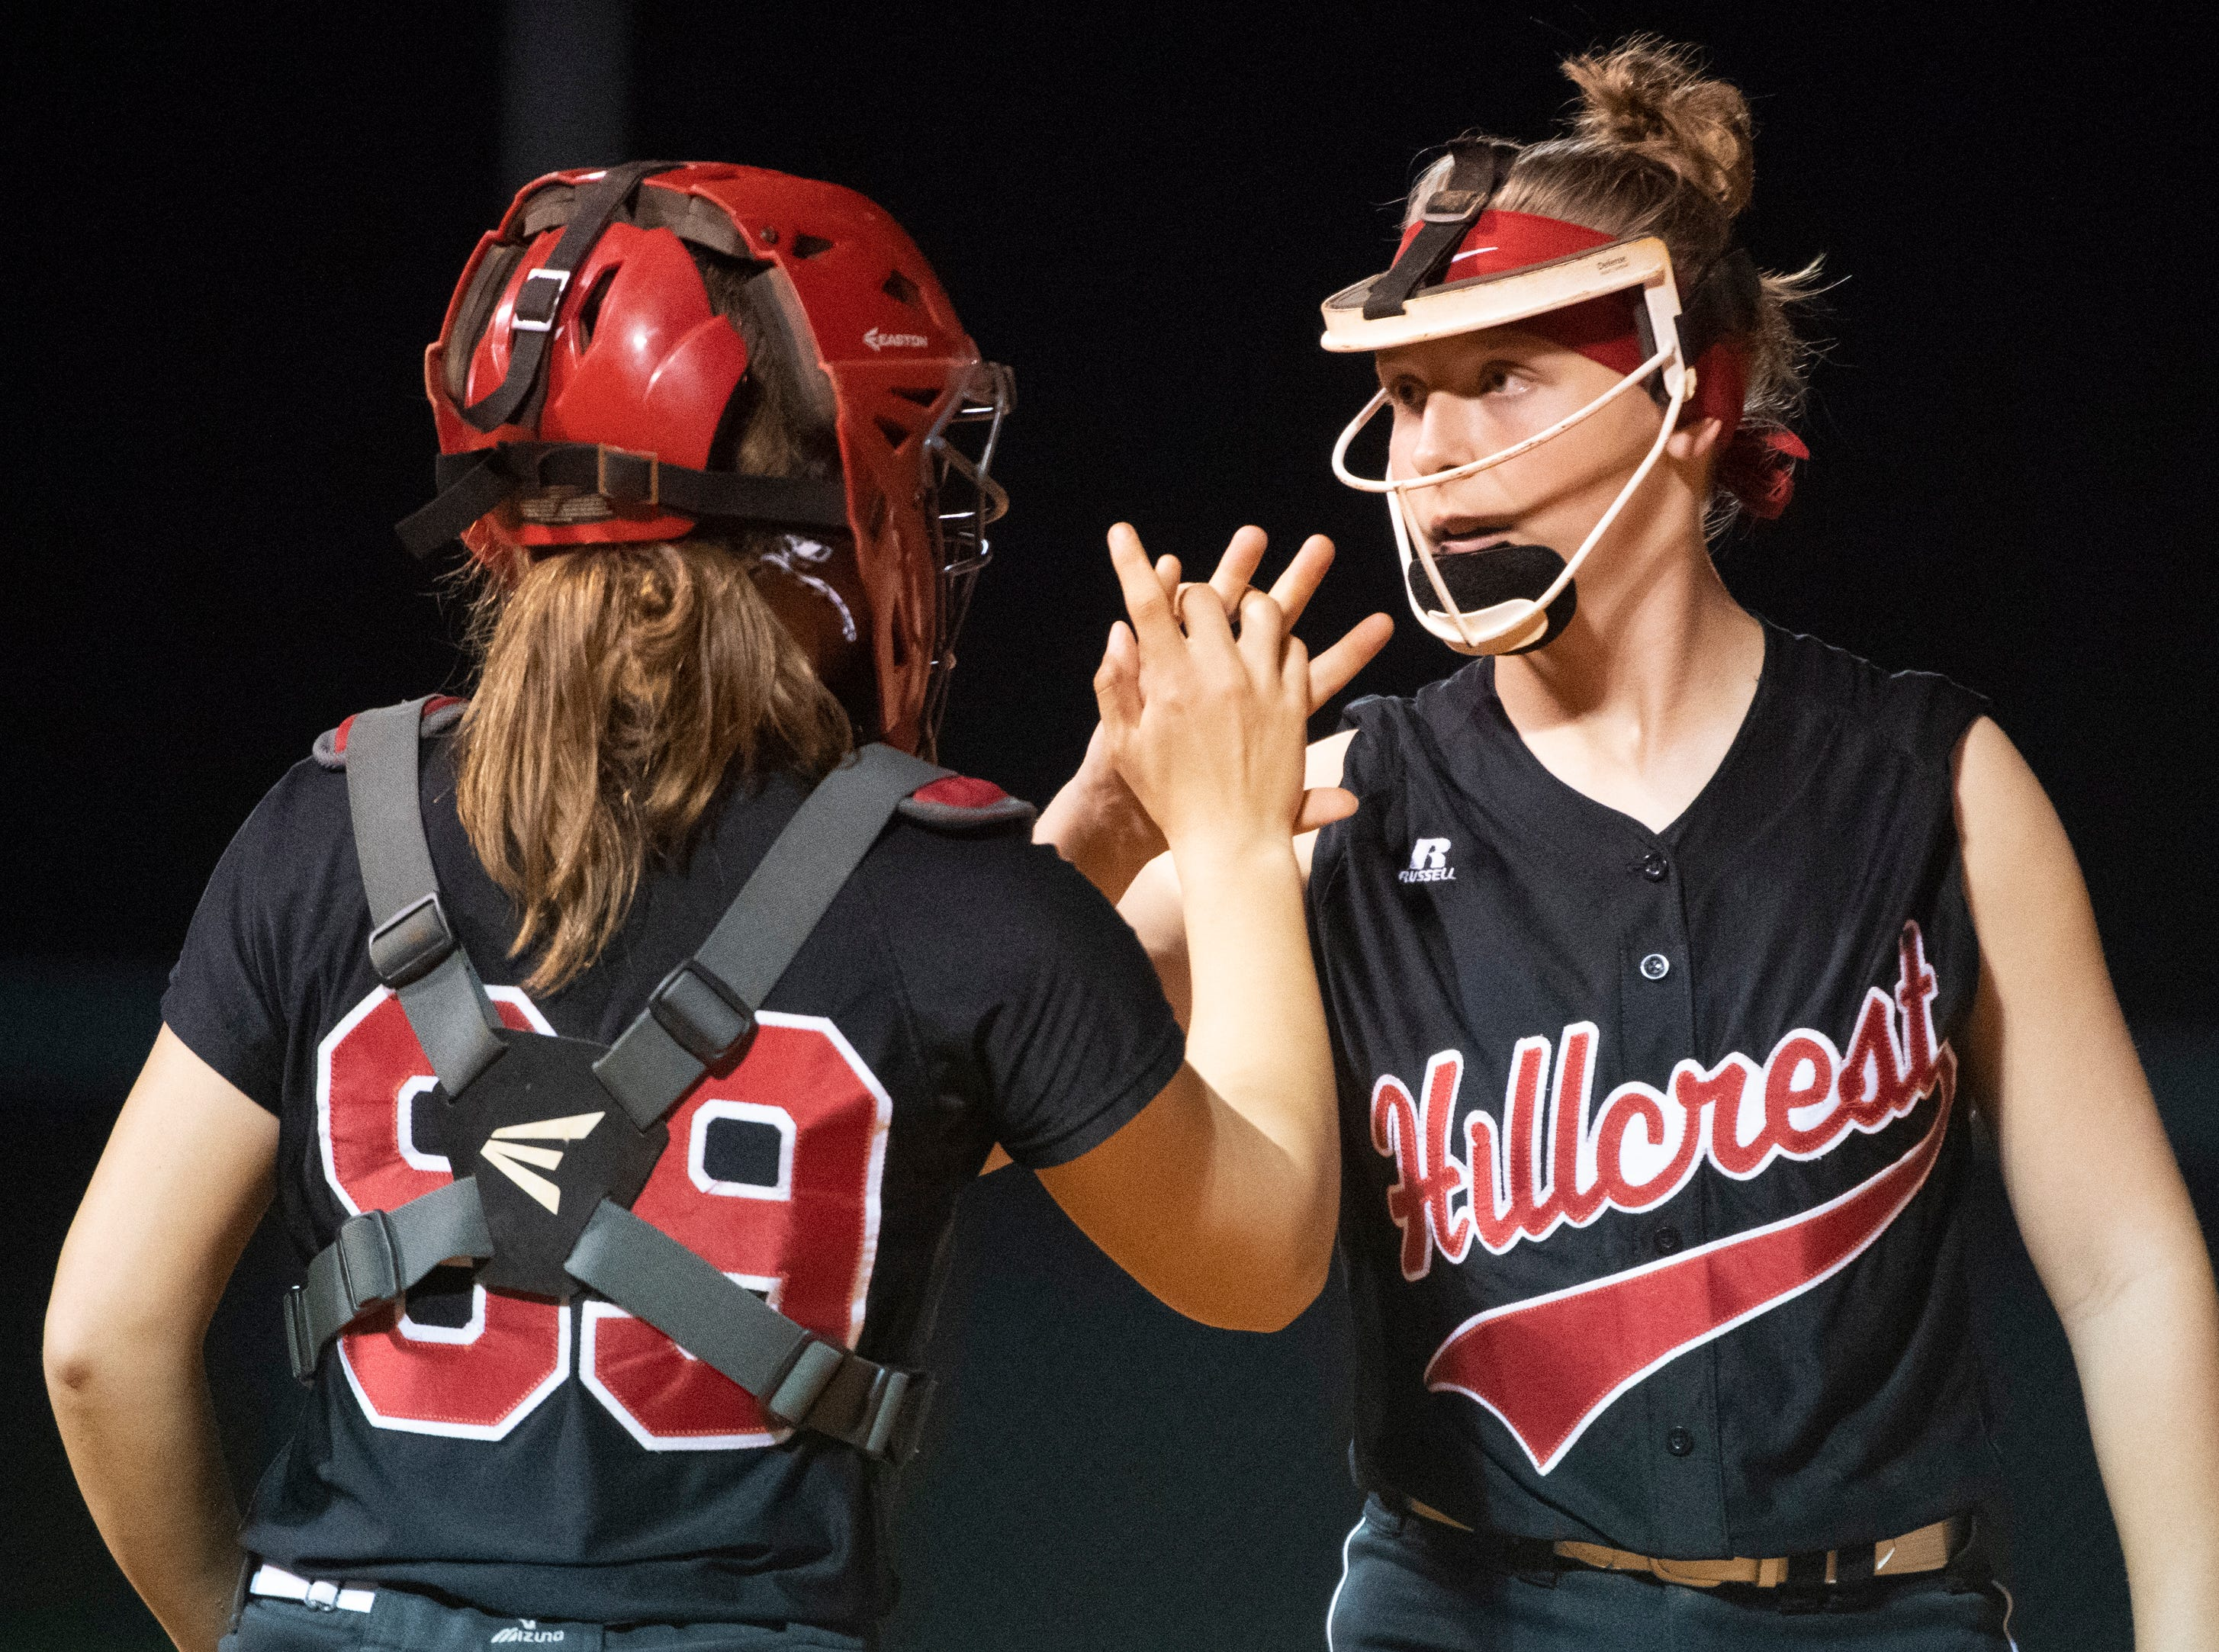 Hillcrest's pitcher Kristyn Ezzo (2) (right) and catcher Hannah Stevens (99) shake hands at the start of an inning during the game against Boiling Springs High School at Hillcrest Friday, April 12, 2019.